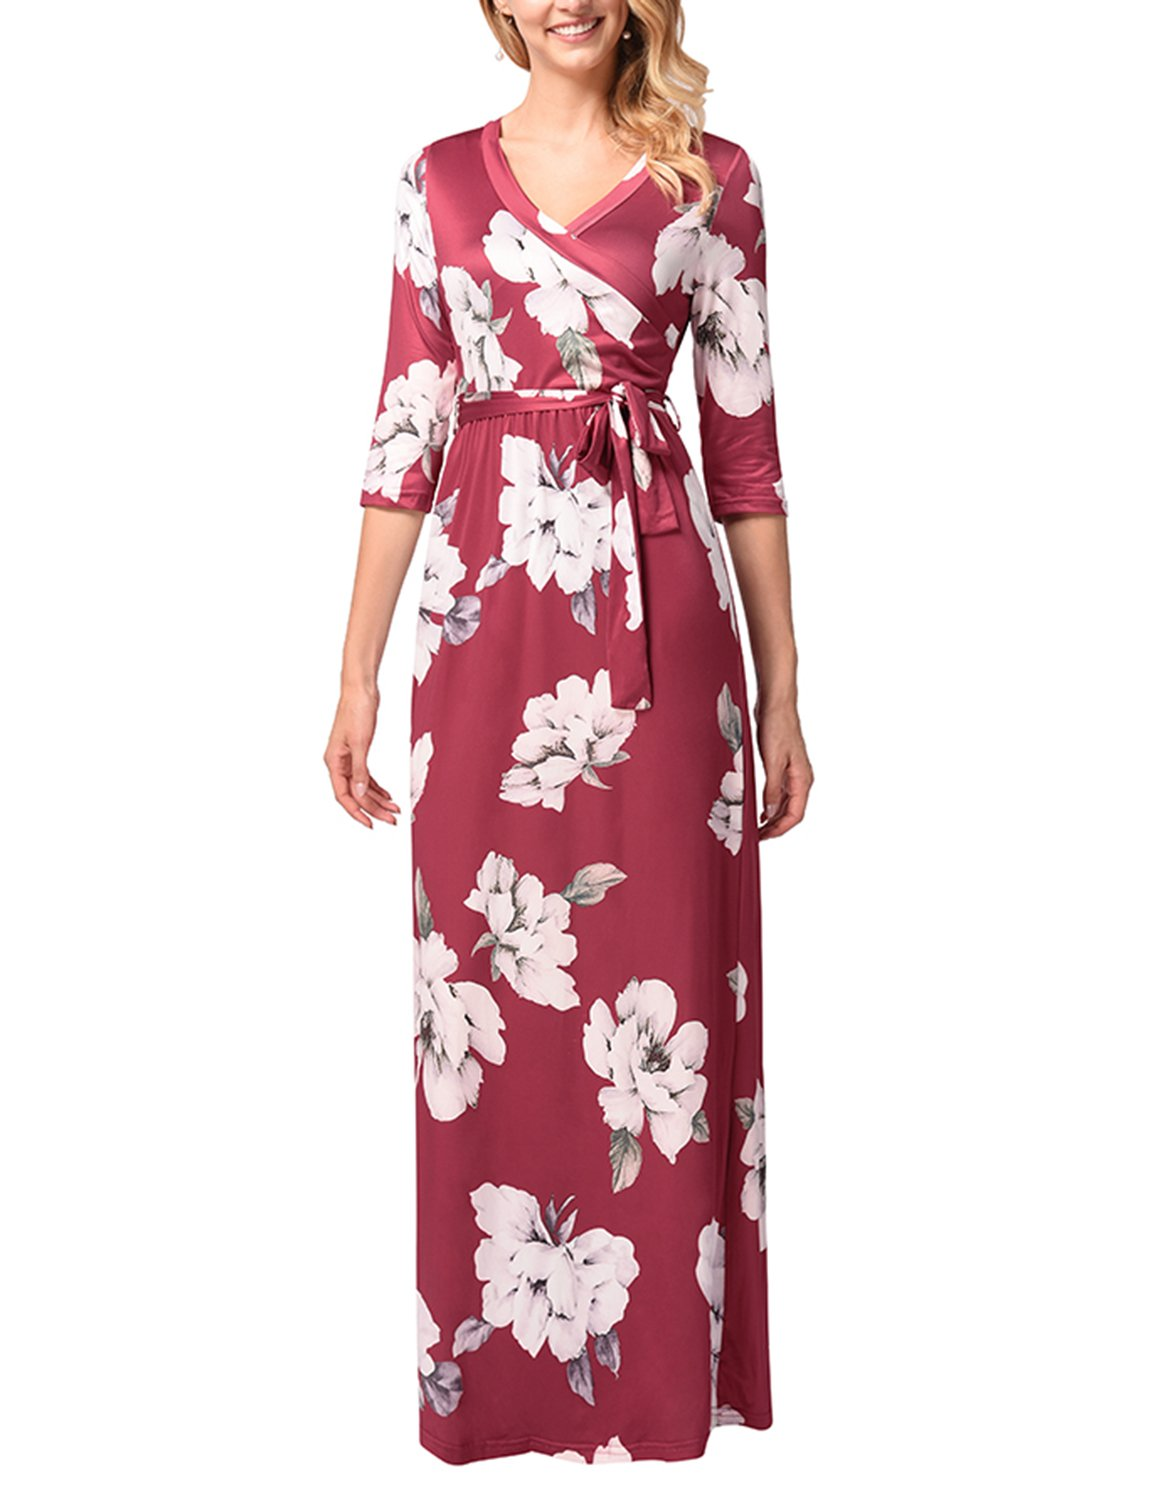 ARTEMISES Pregnancy Womans Breasefeeding V Neck Nursing Maternity Maxi Dress,Wine,Small